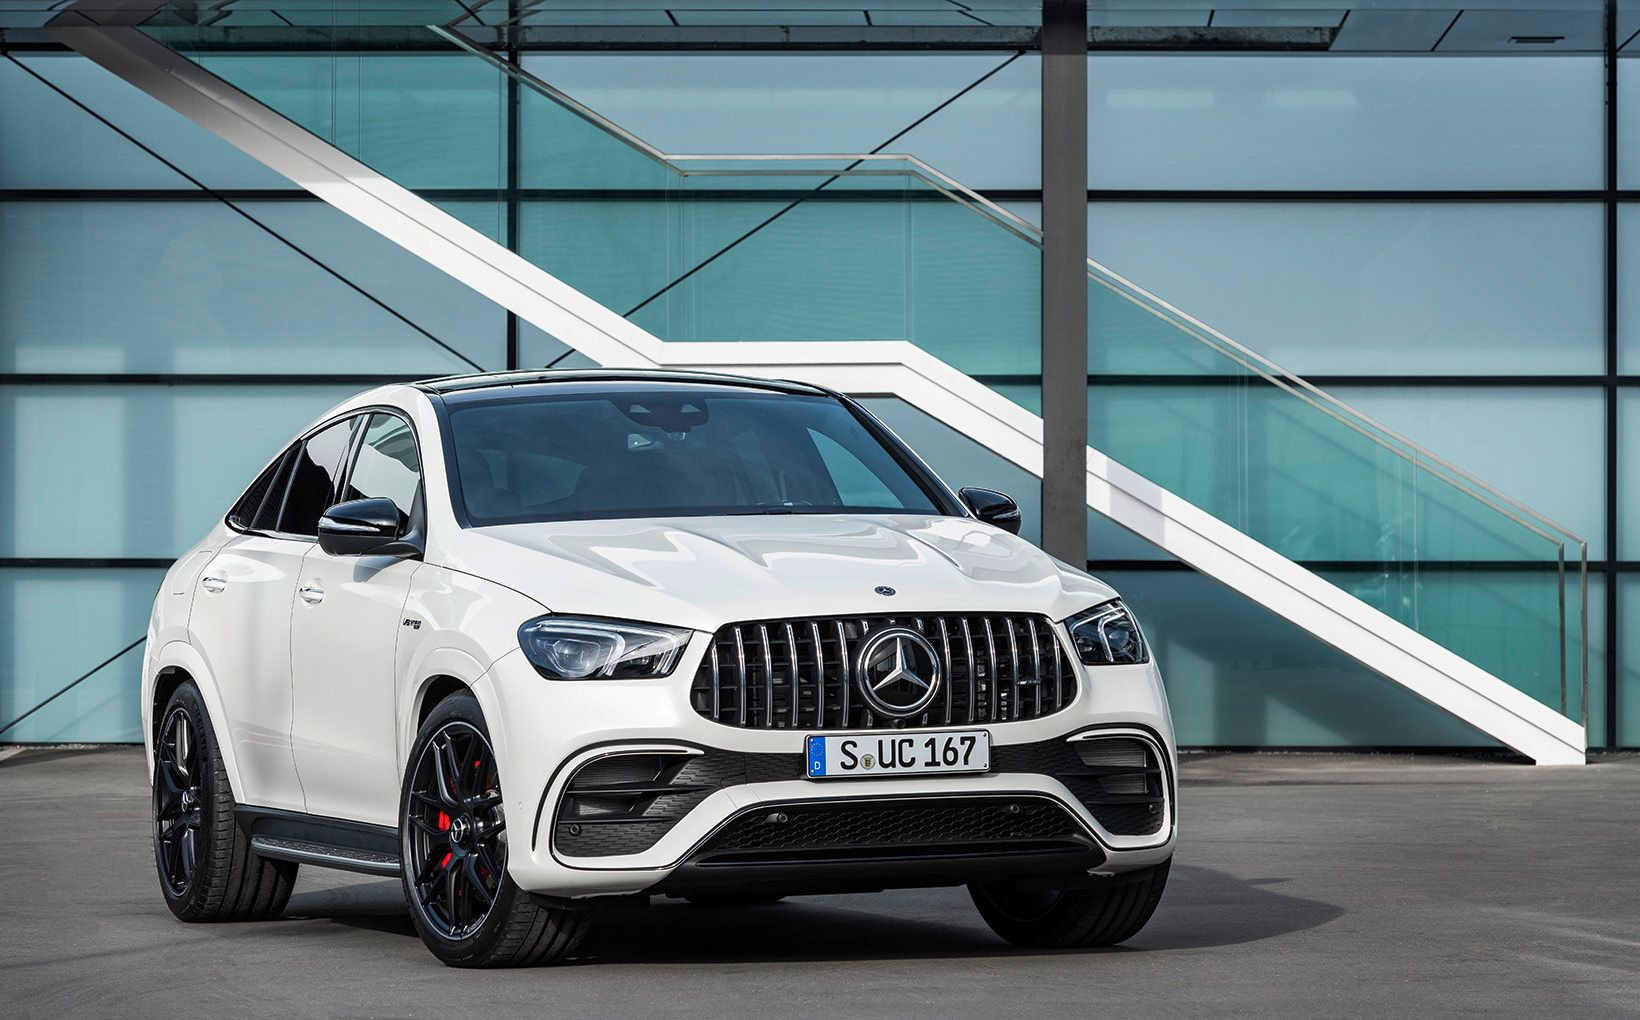 Mercedes Amg Blends Style And Substance With New Generation Gle63 S Coupe Shannons Club